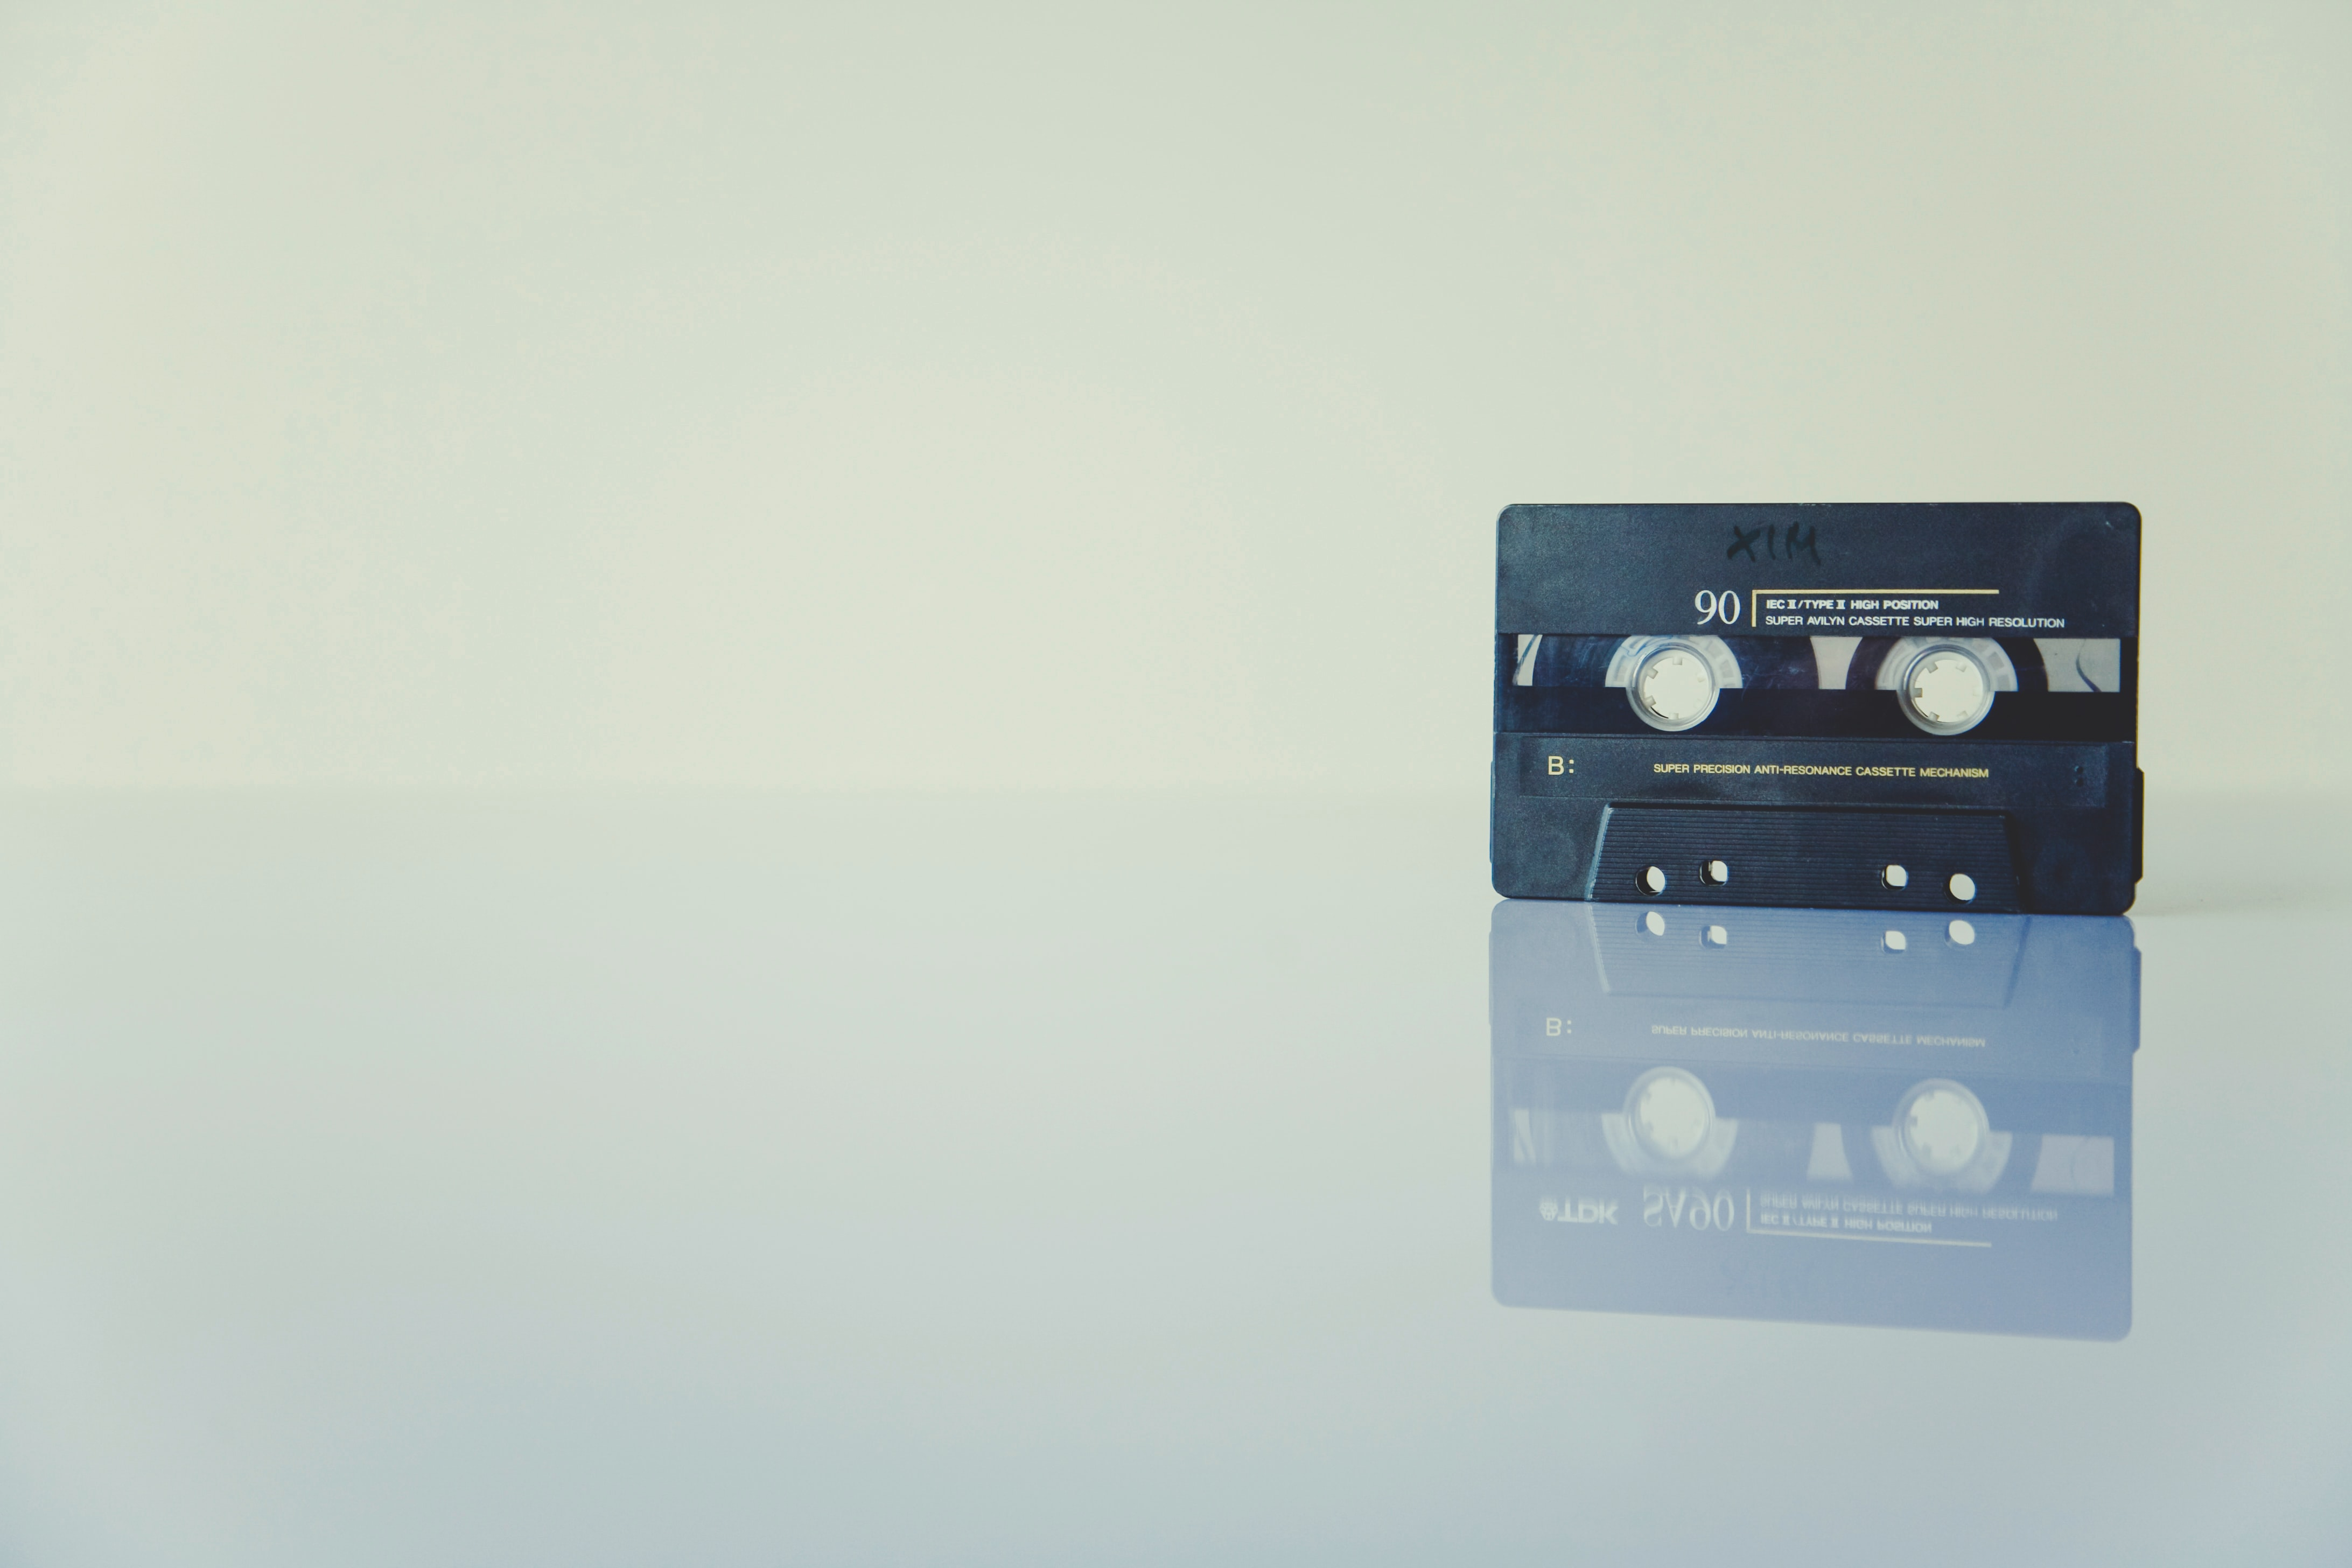 A cassette tape on a flat reflective surface